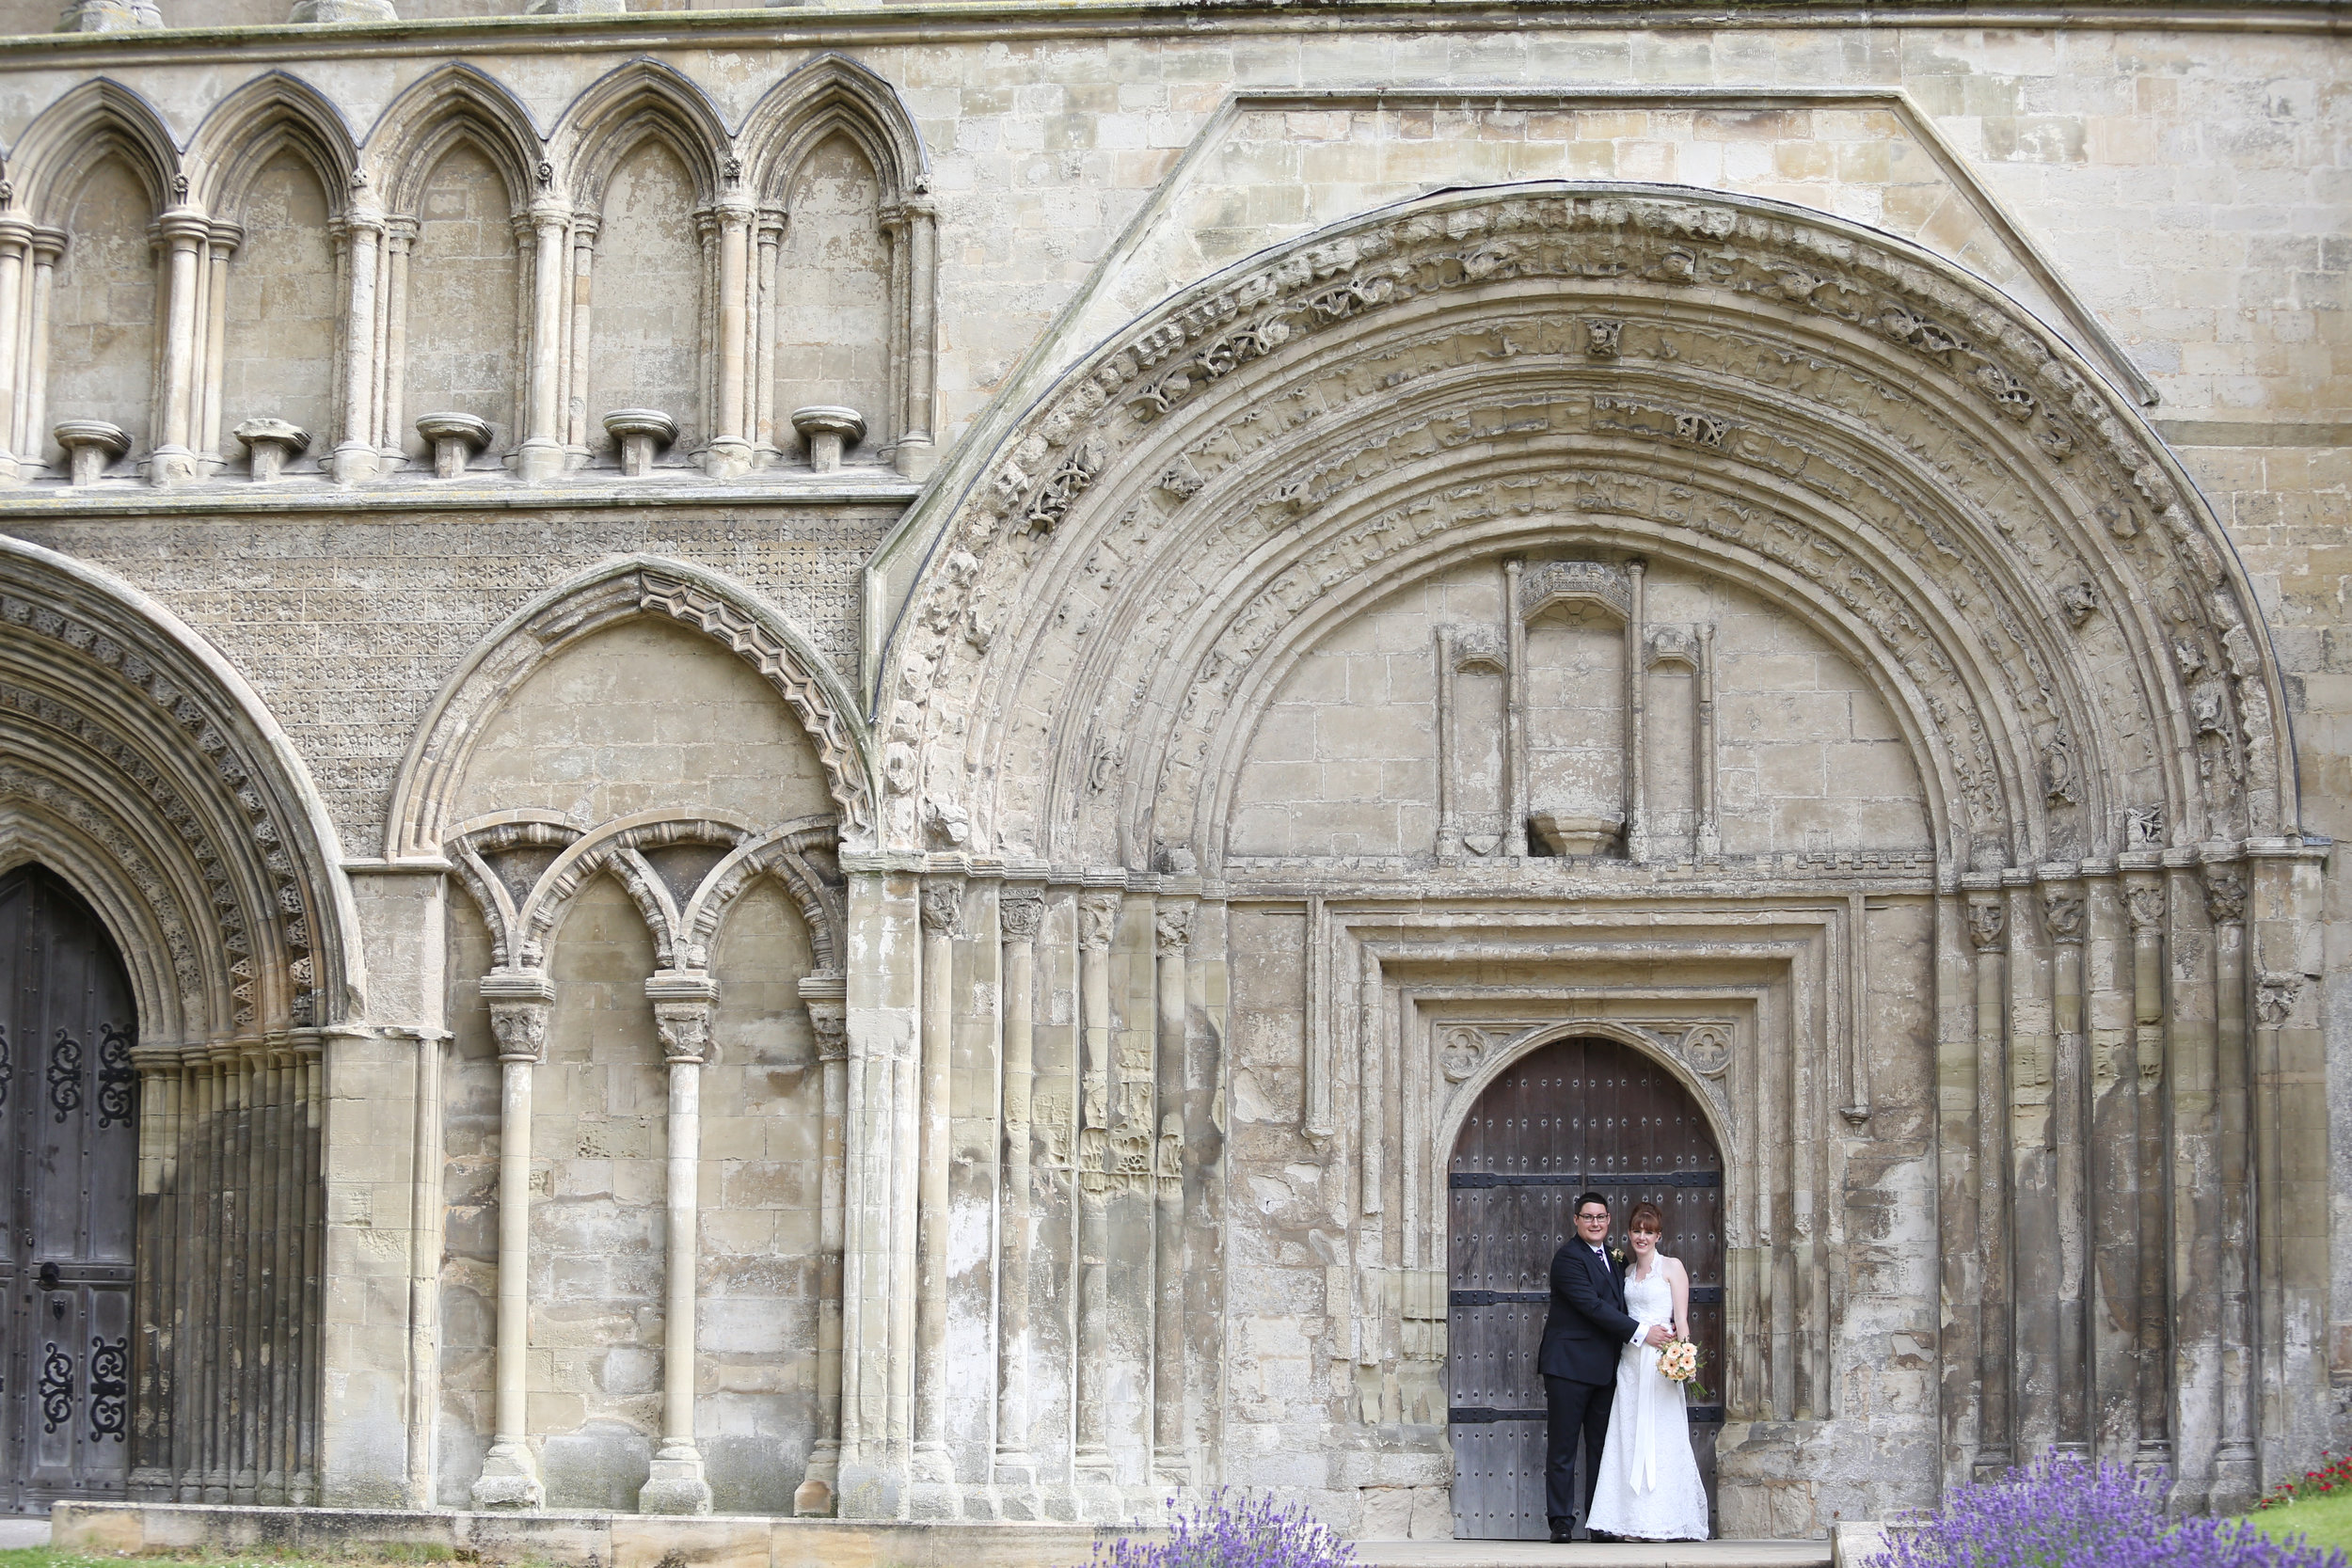 JELLYFISH WEDDING PHOTOGRAPHY THE PRIORY ST PETER CHURCH DUNSTABLE (43).jpg